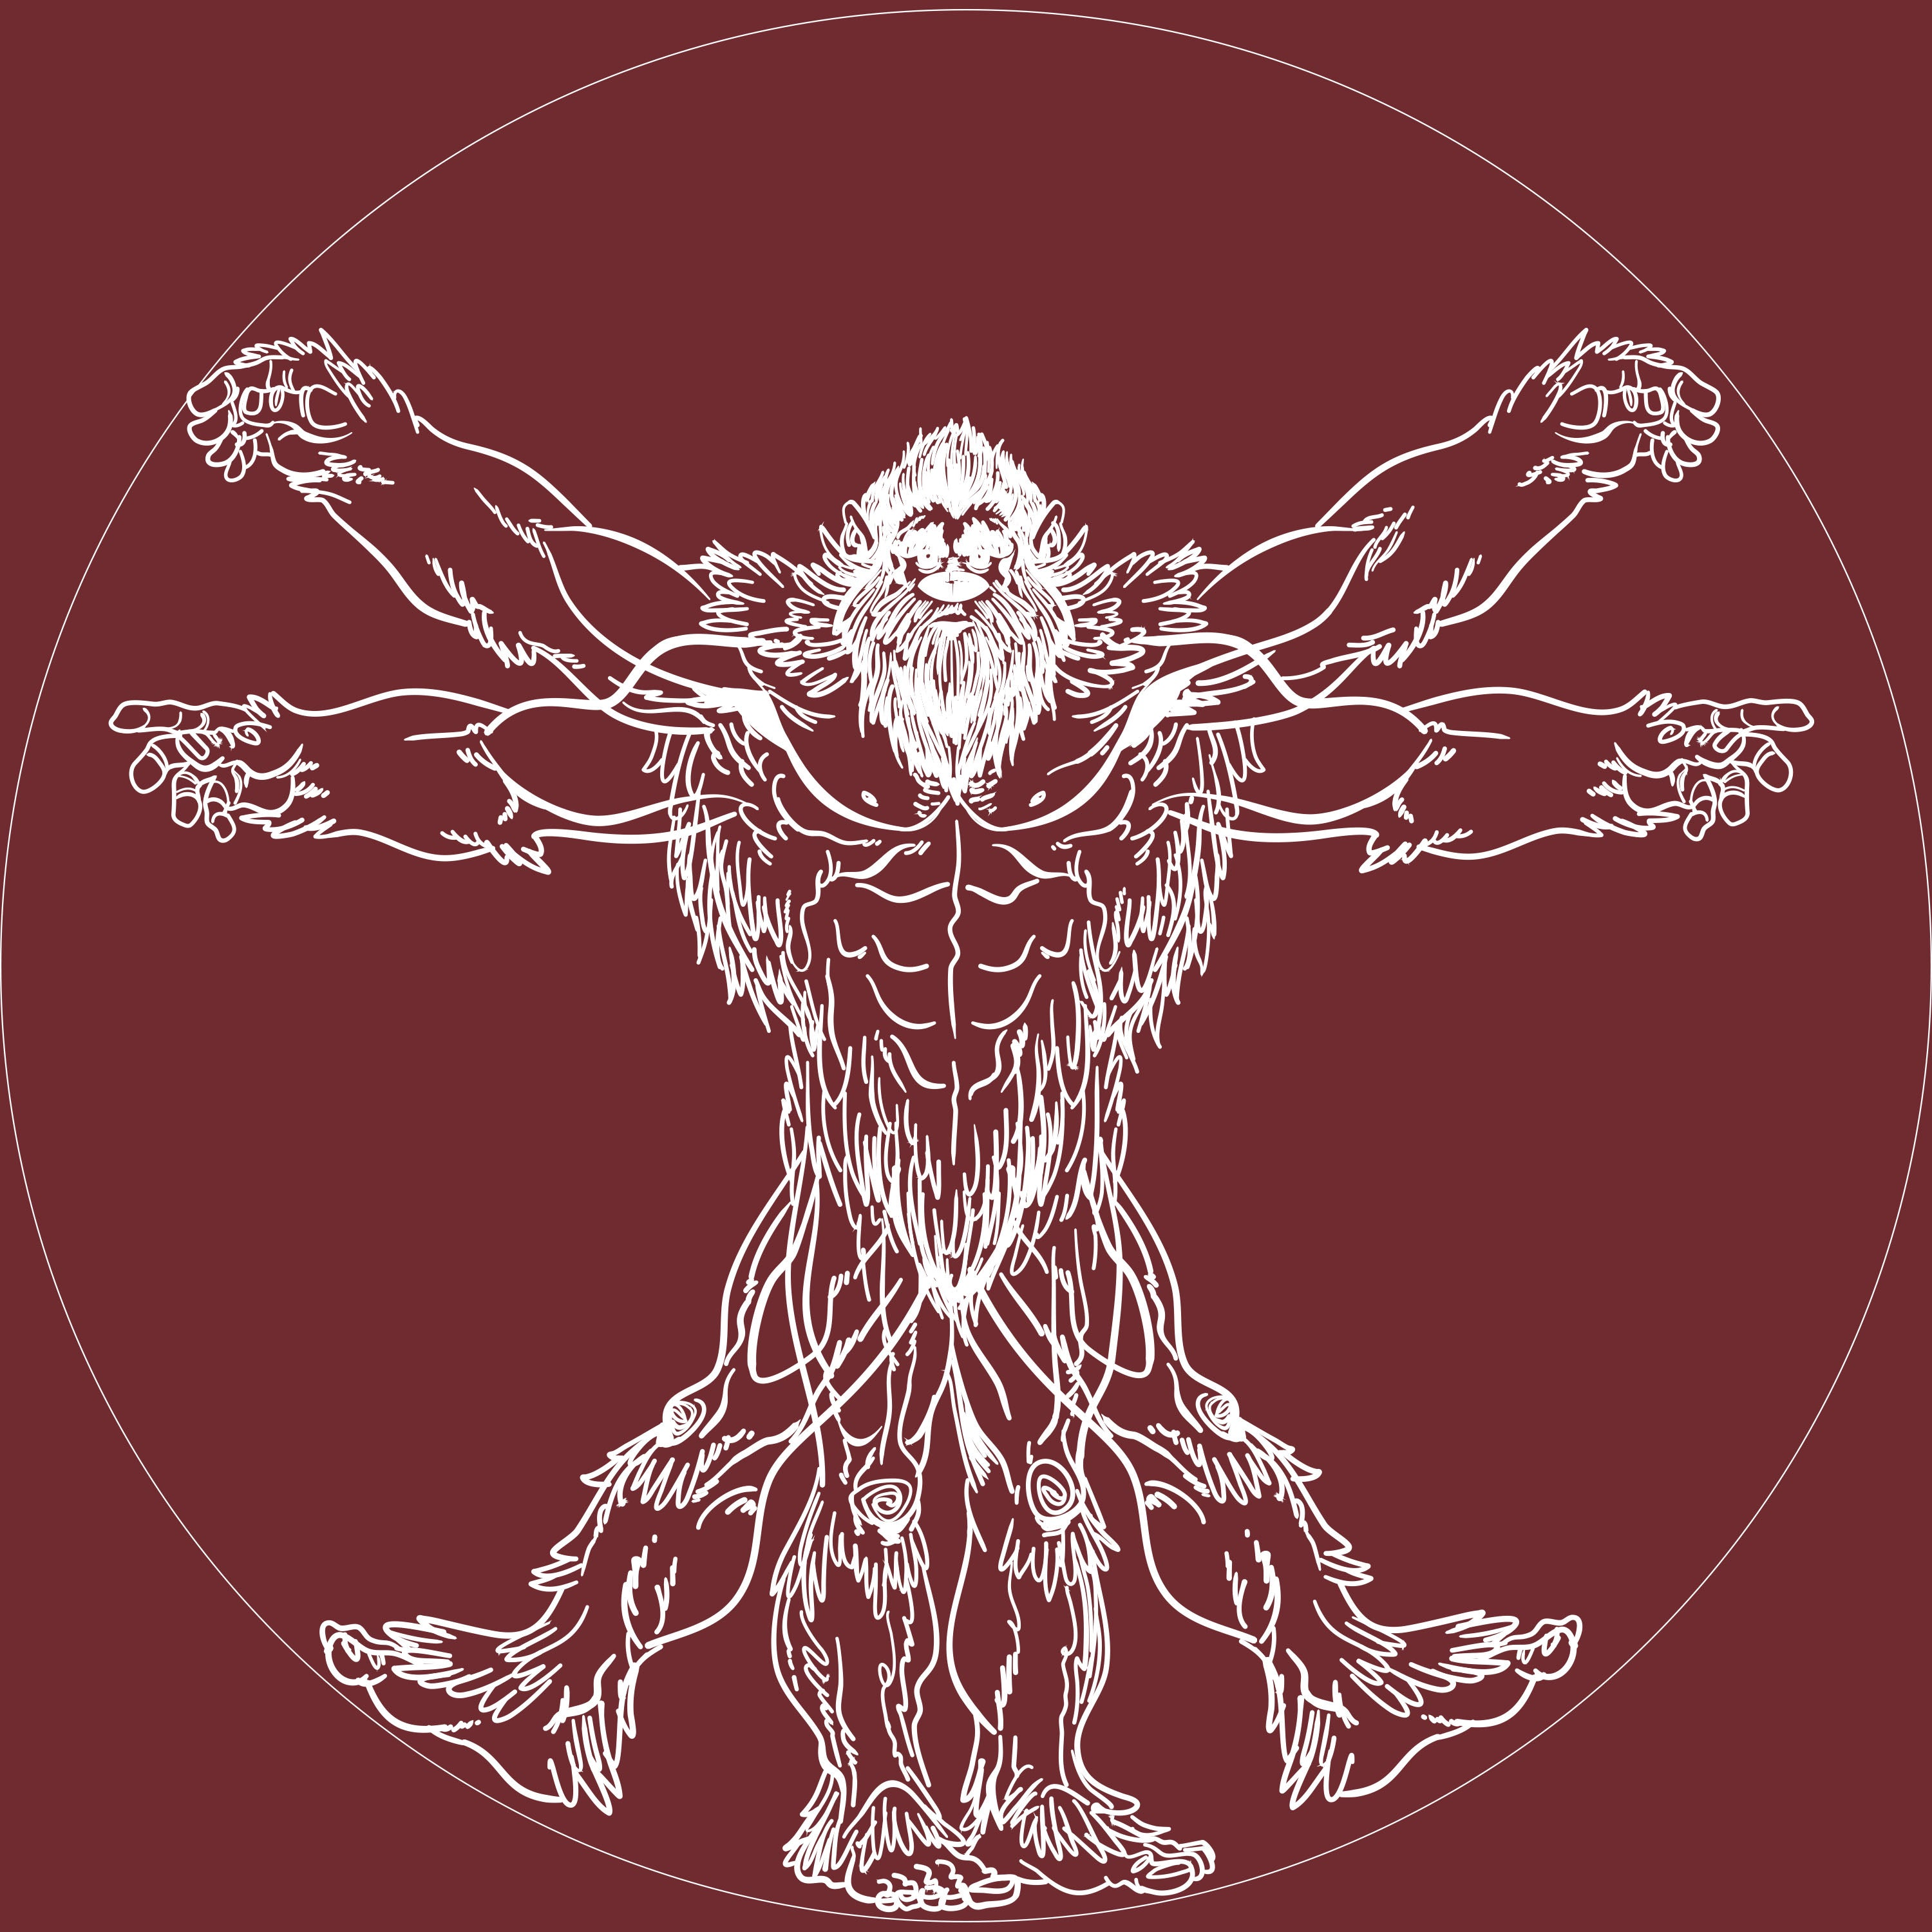 Vitruvian Bigfoot